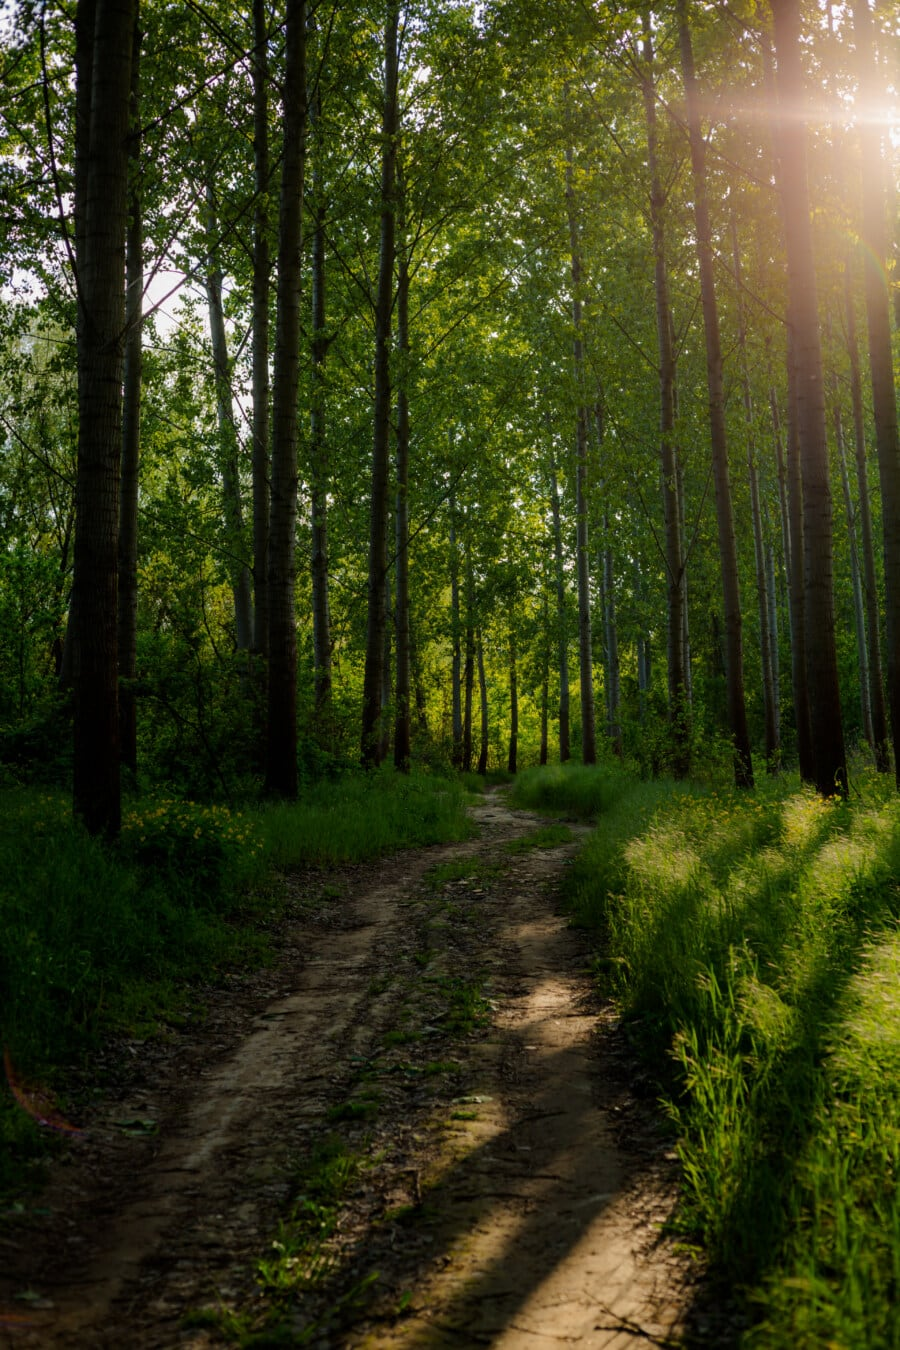 forest path, sunlight, sunrays, shadow, trees, tree, woods, wood, forest, landscape